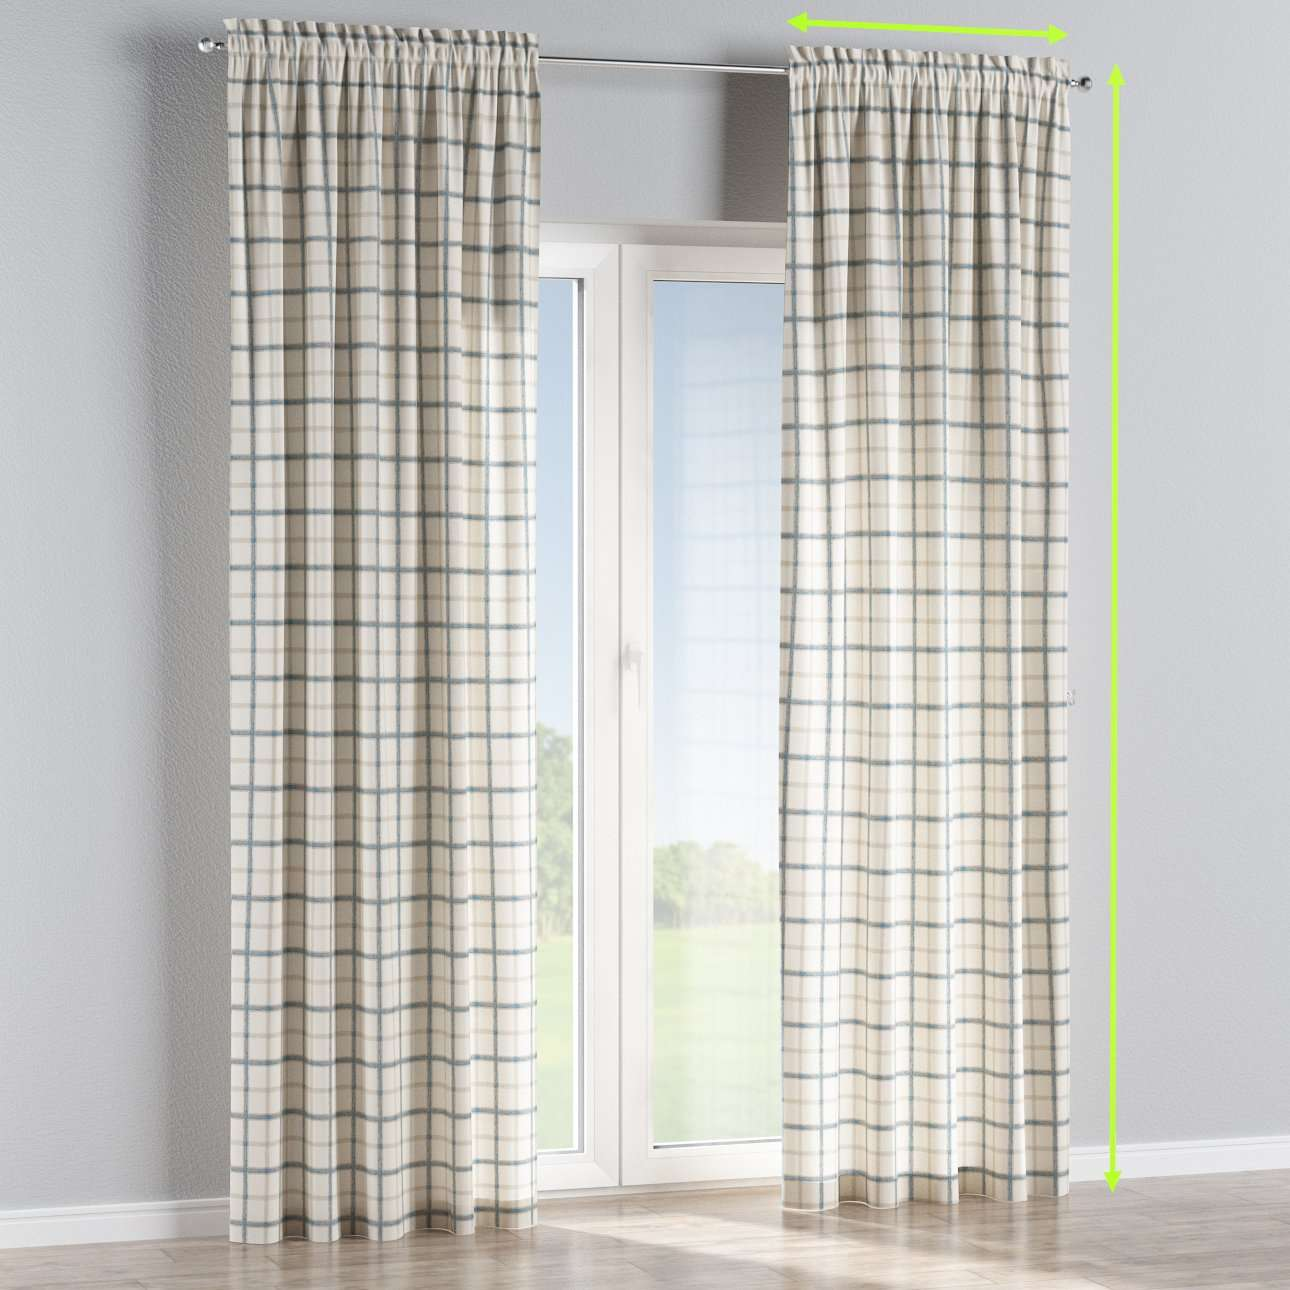 Slot and frill curtains in collection Avinon, fabric: 131-66